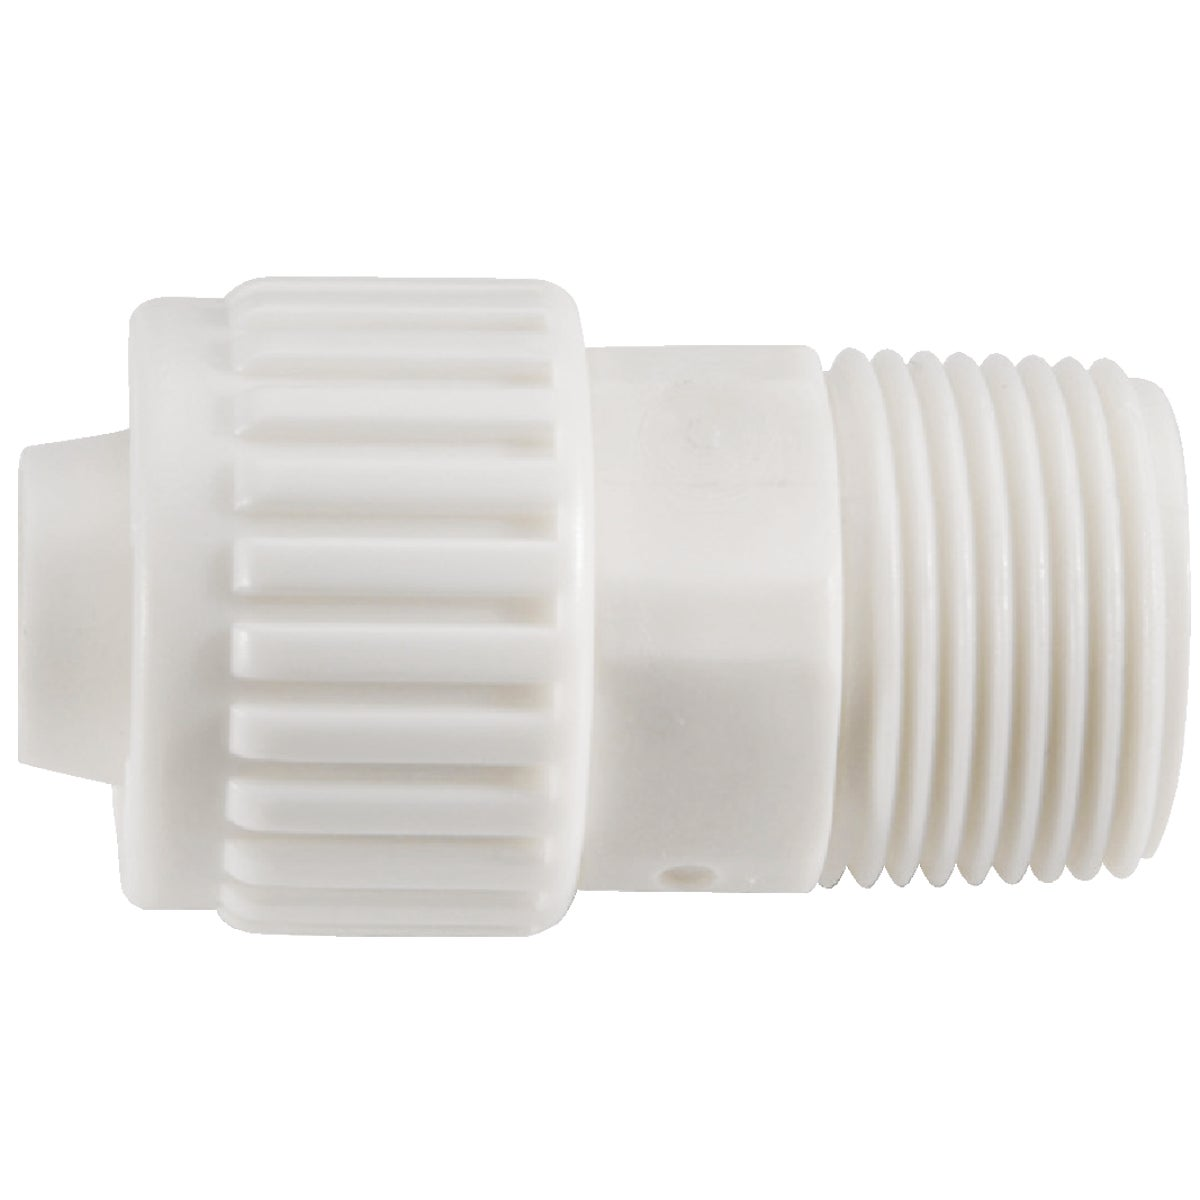 3/4X3/4MPT ADAPTER - 16848 by Flair It West